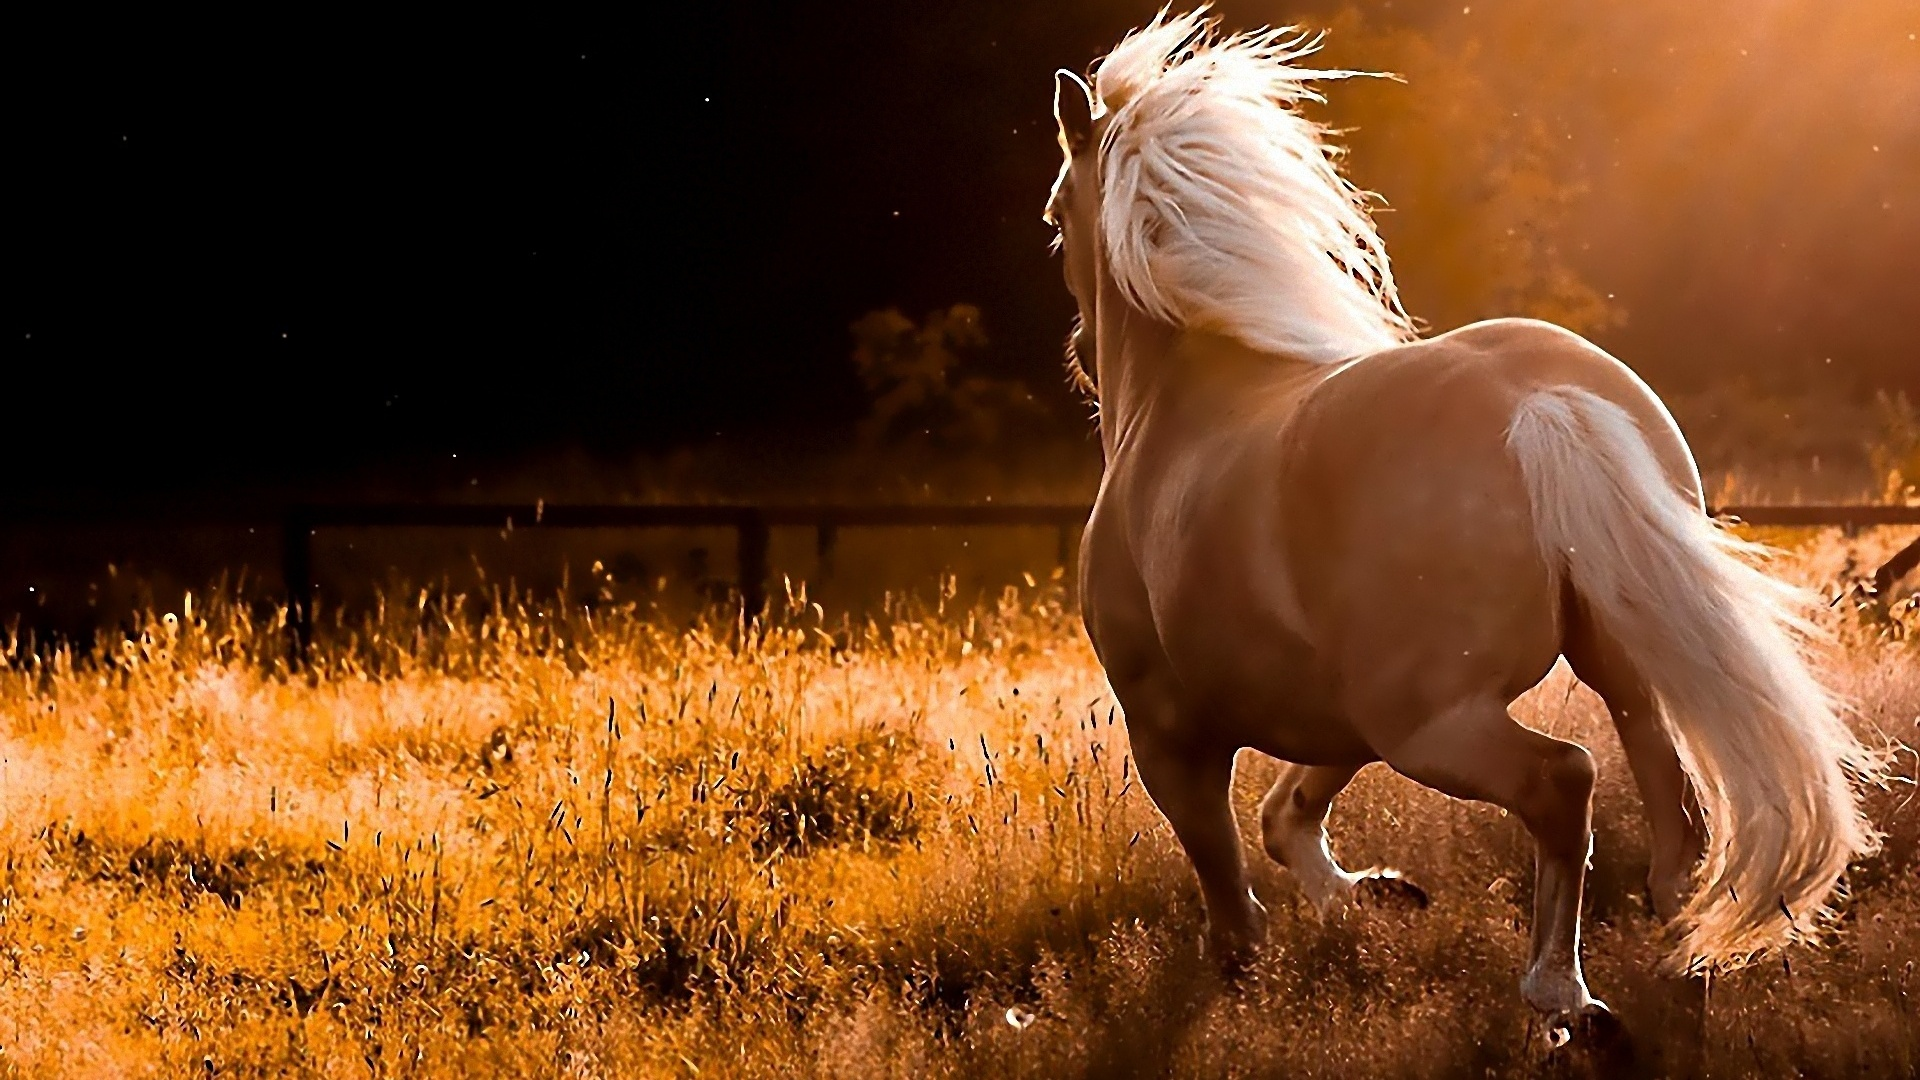 horse hd wallpapers running horse hd wallpapers running horse hd 1920x1080